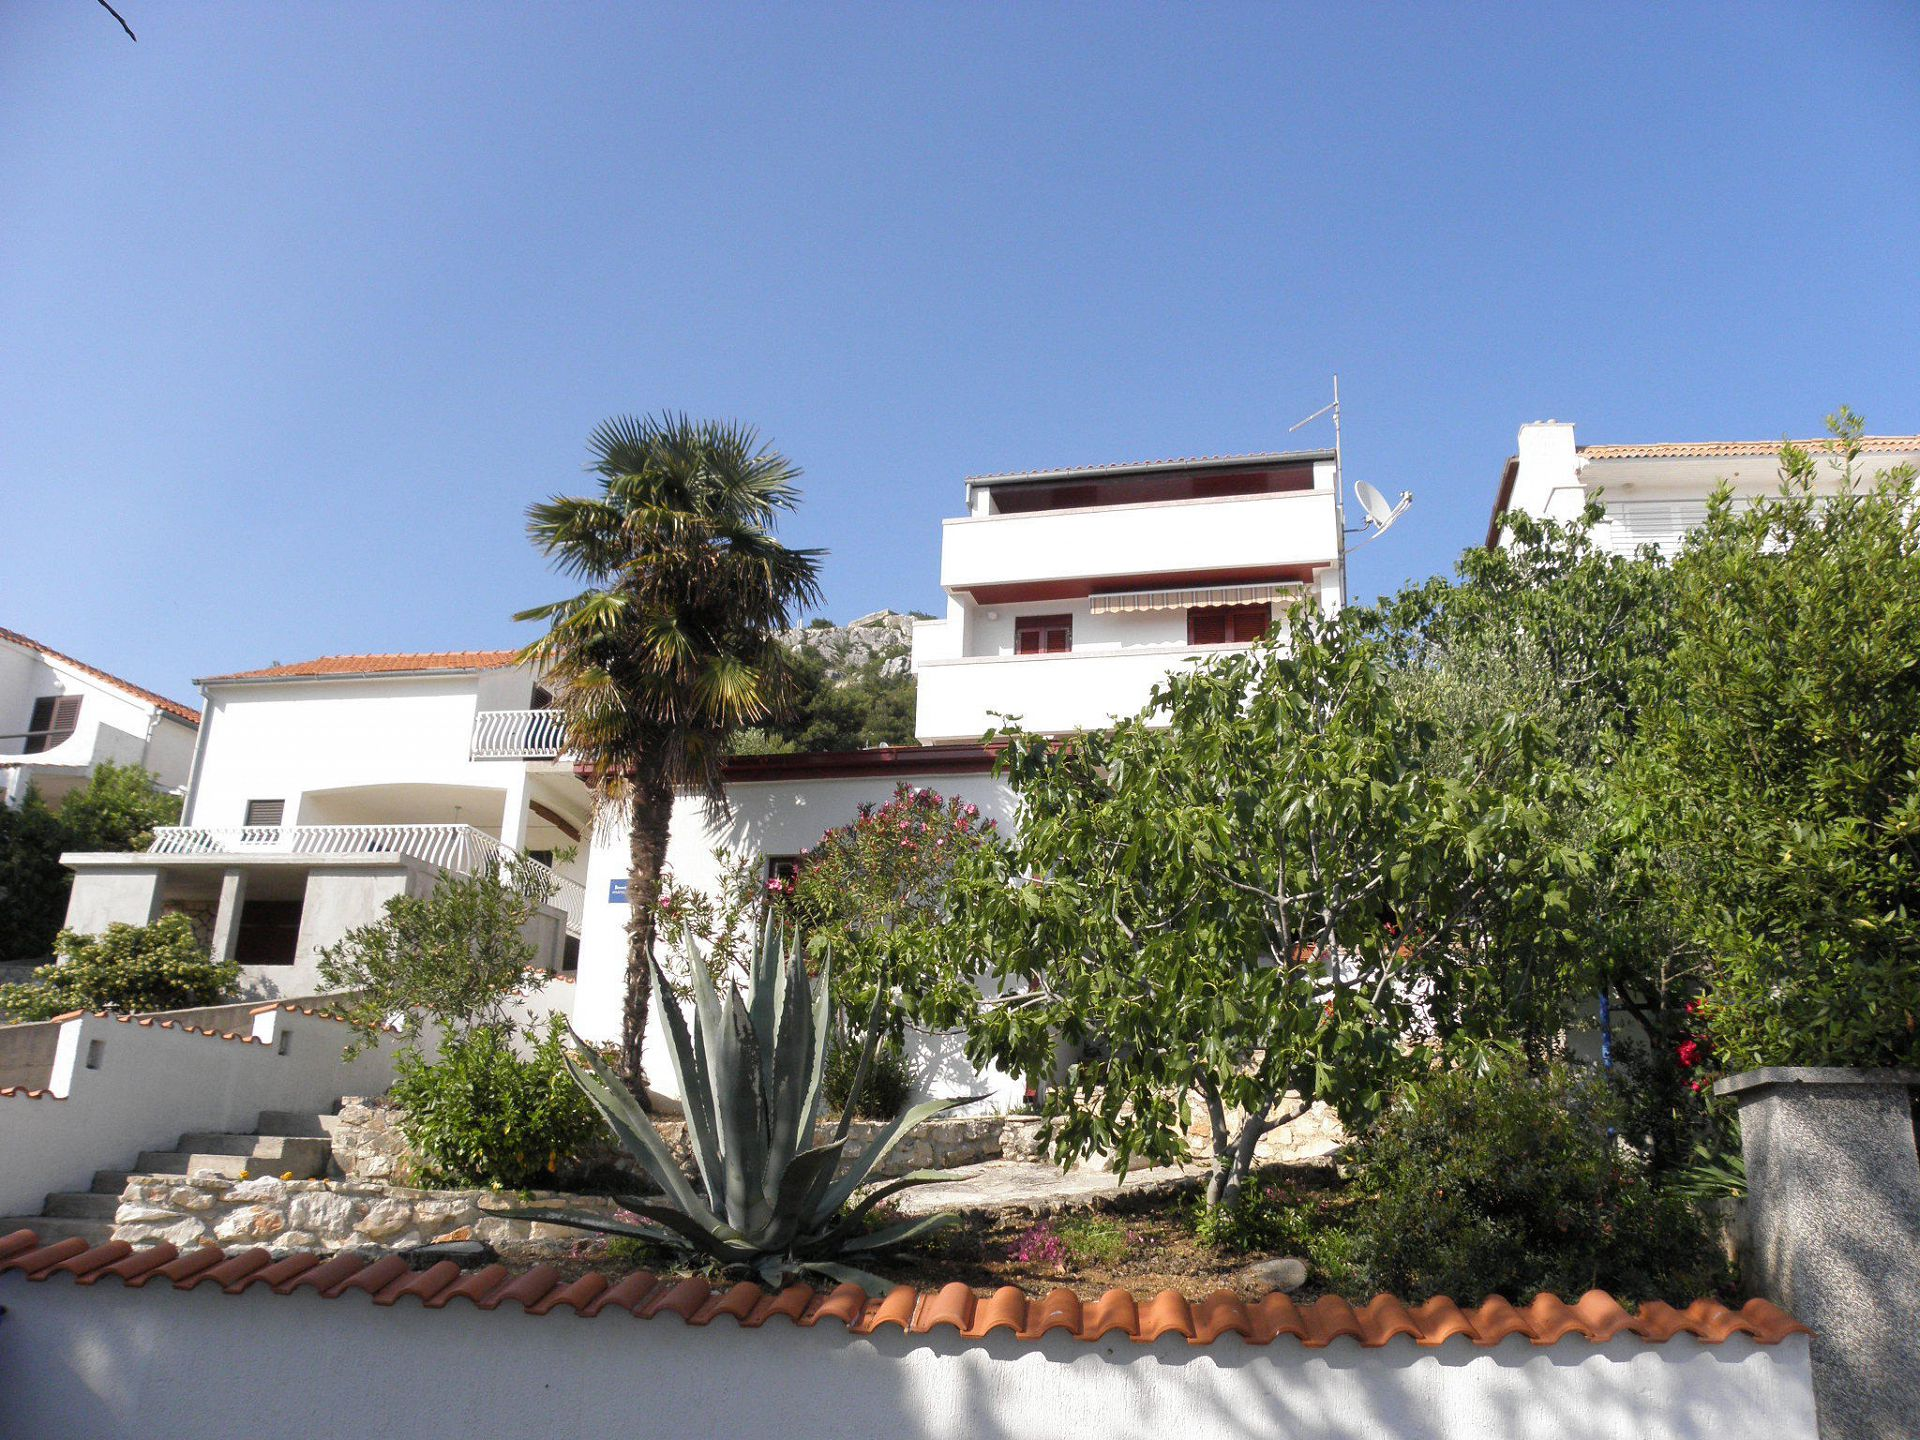 Apartments Marija - 30m from the beach: A1(4+1), A2(4+1), A4(2+1) Murter - Island Murter